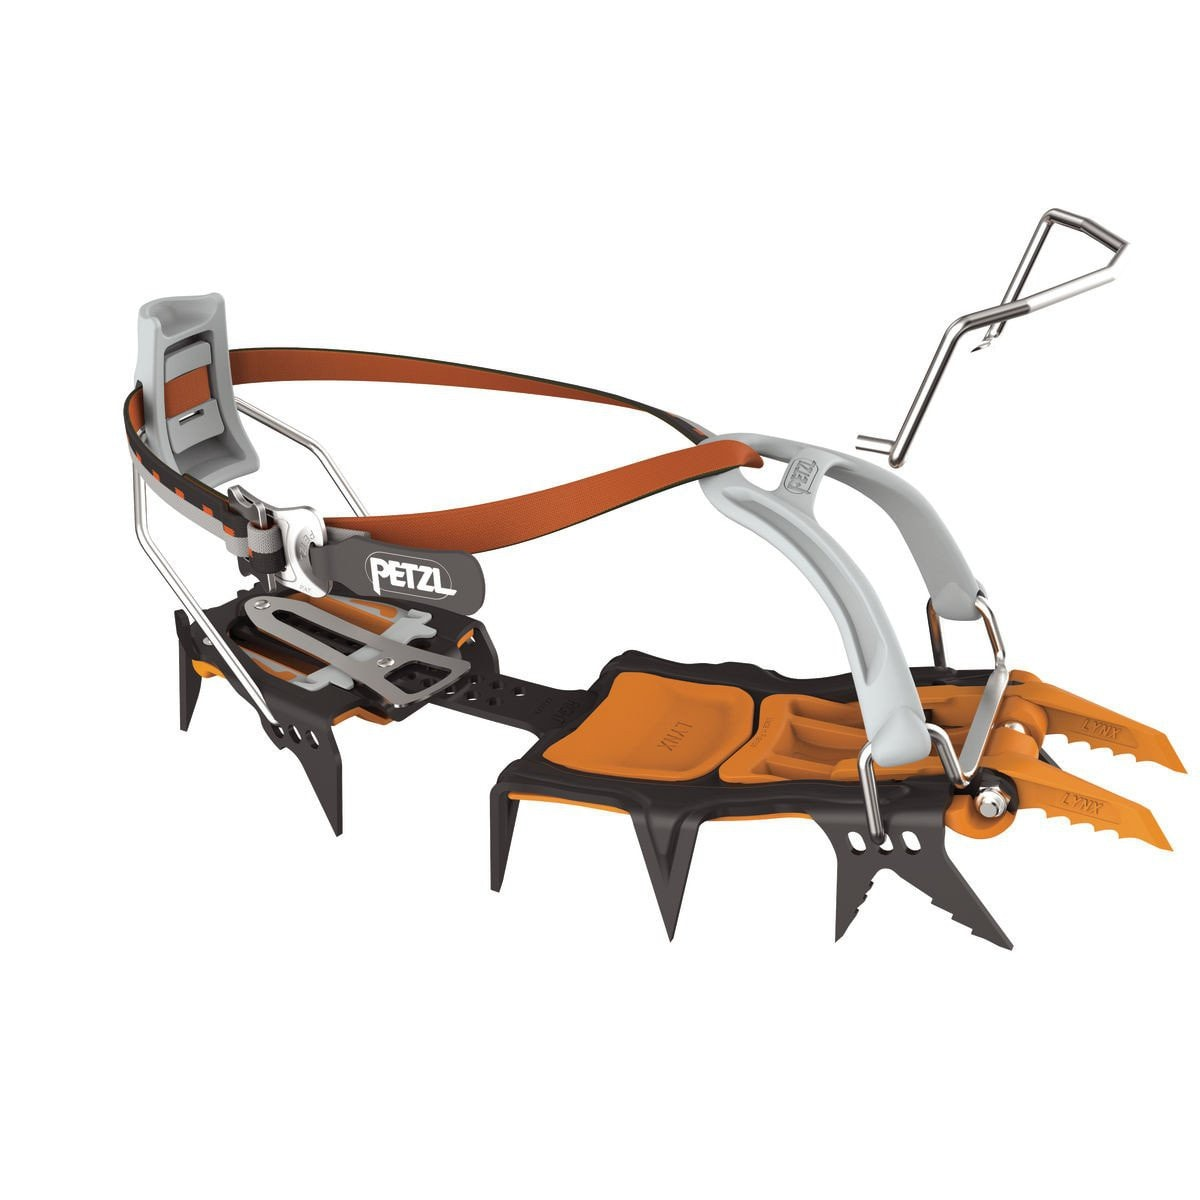 Petzl Lynx Leverlock Universal crampon, in orange, black and silver colours